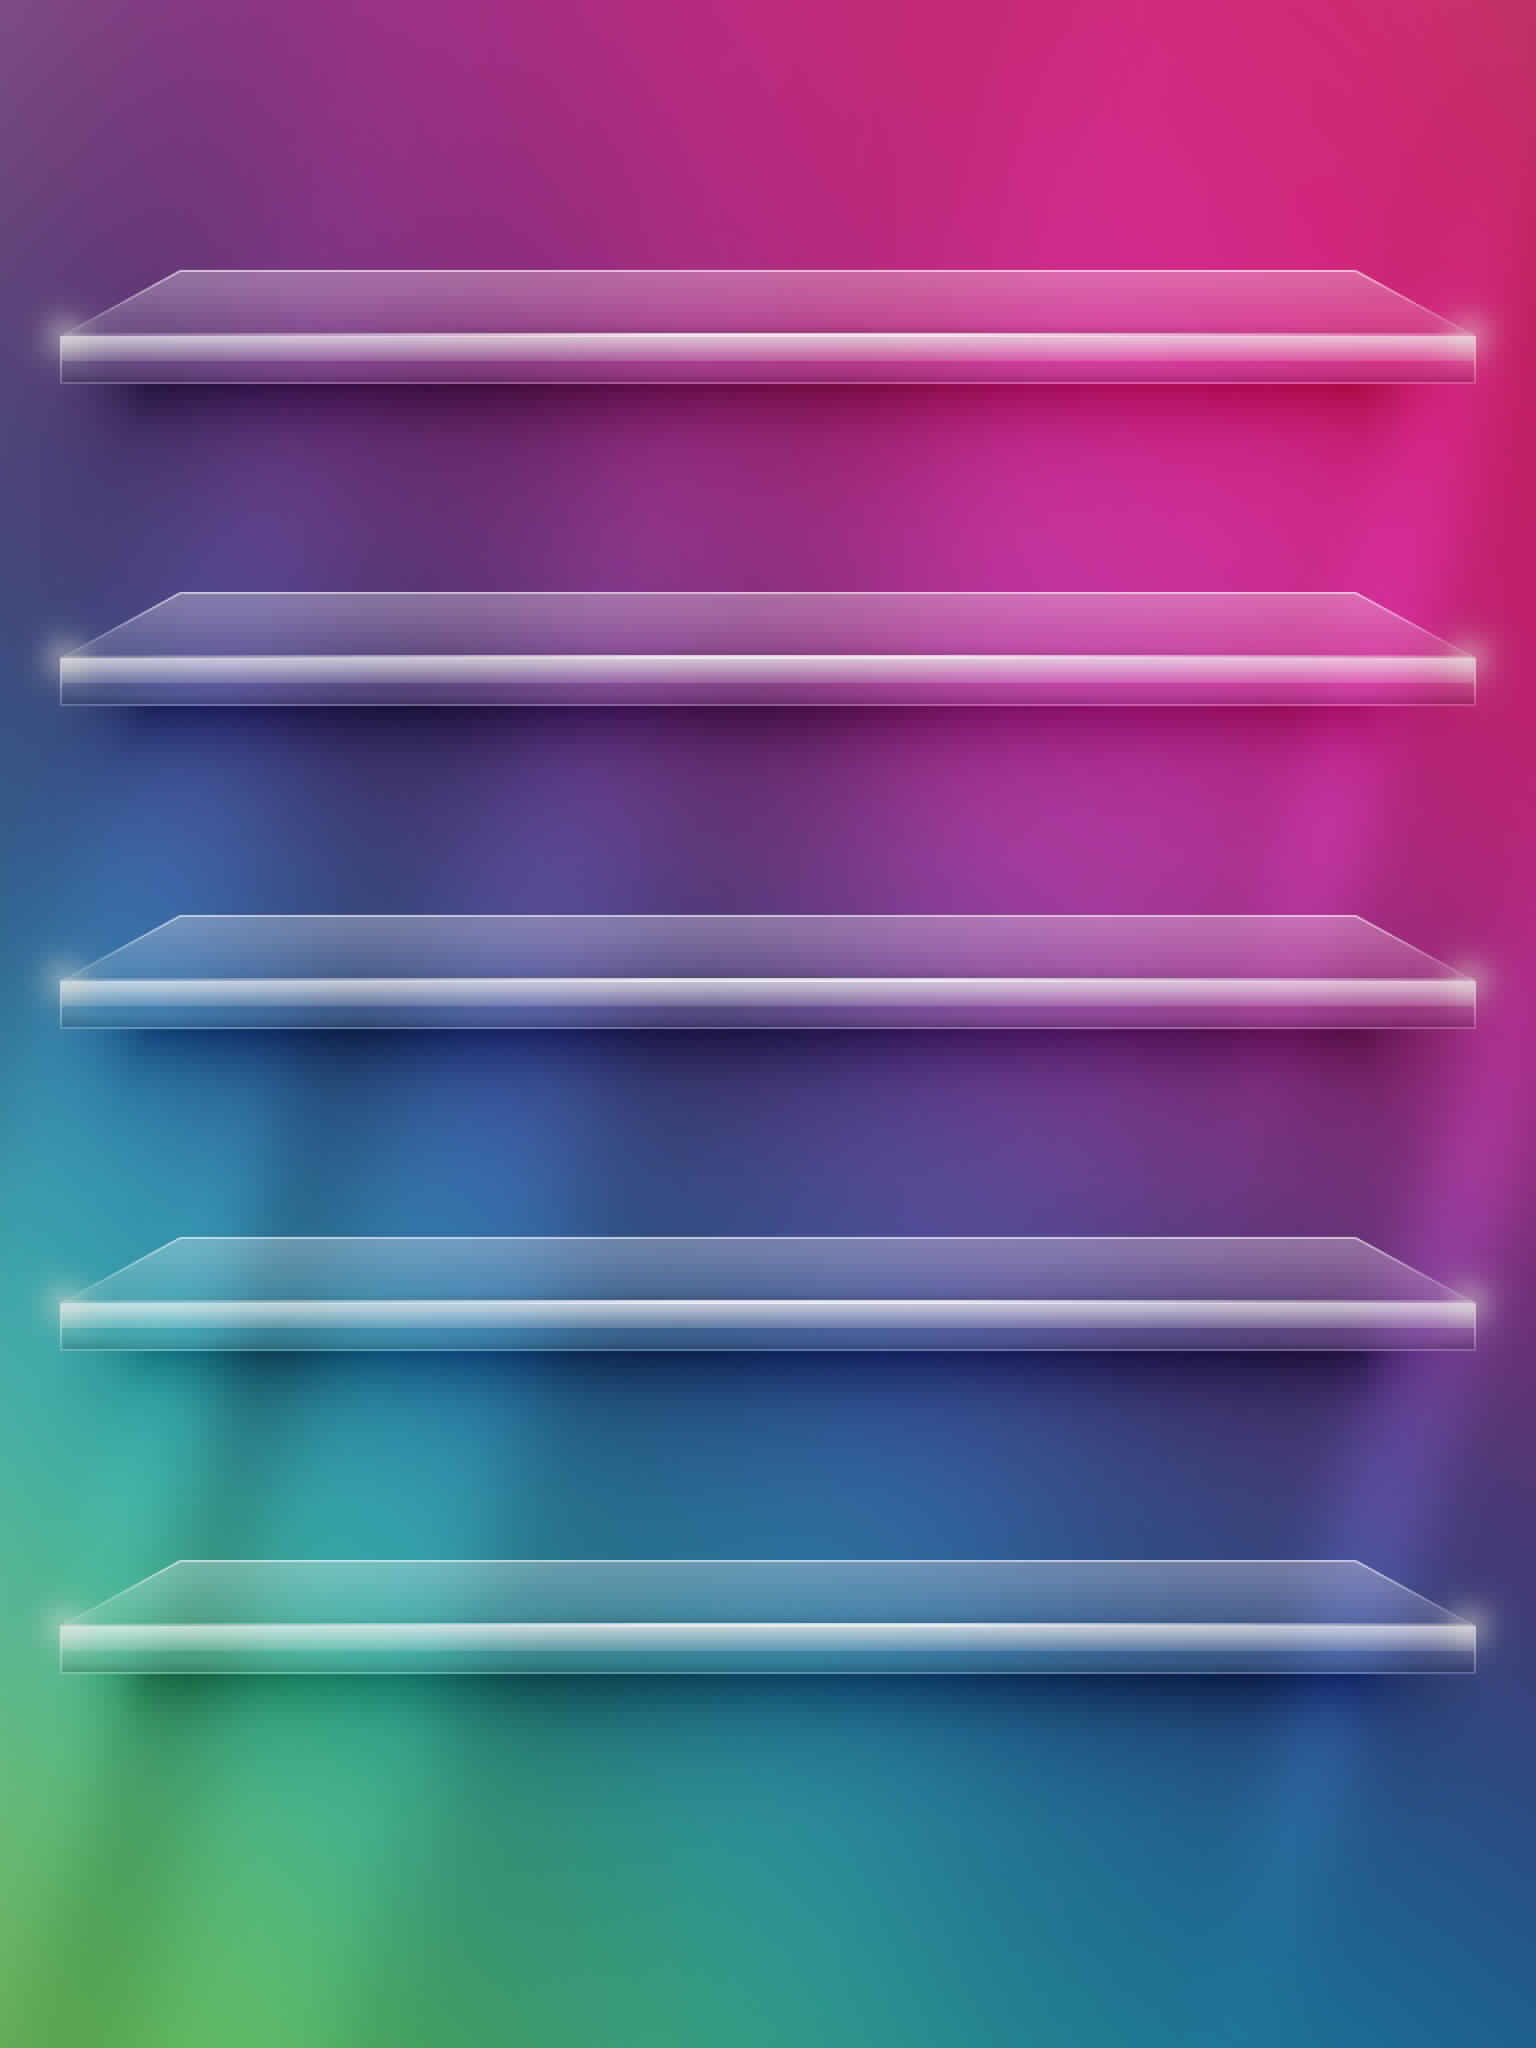 iphone ipad app shelves wallpaper downloadwallpaperorg